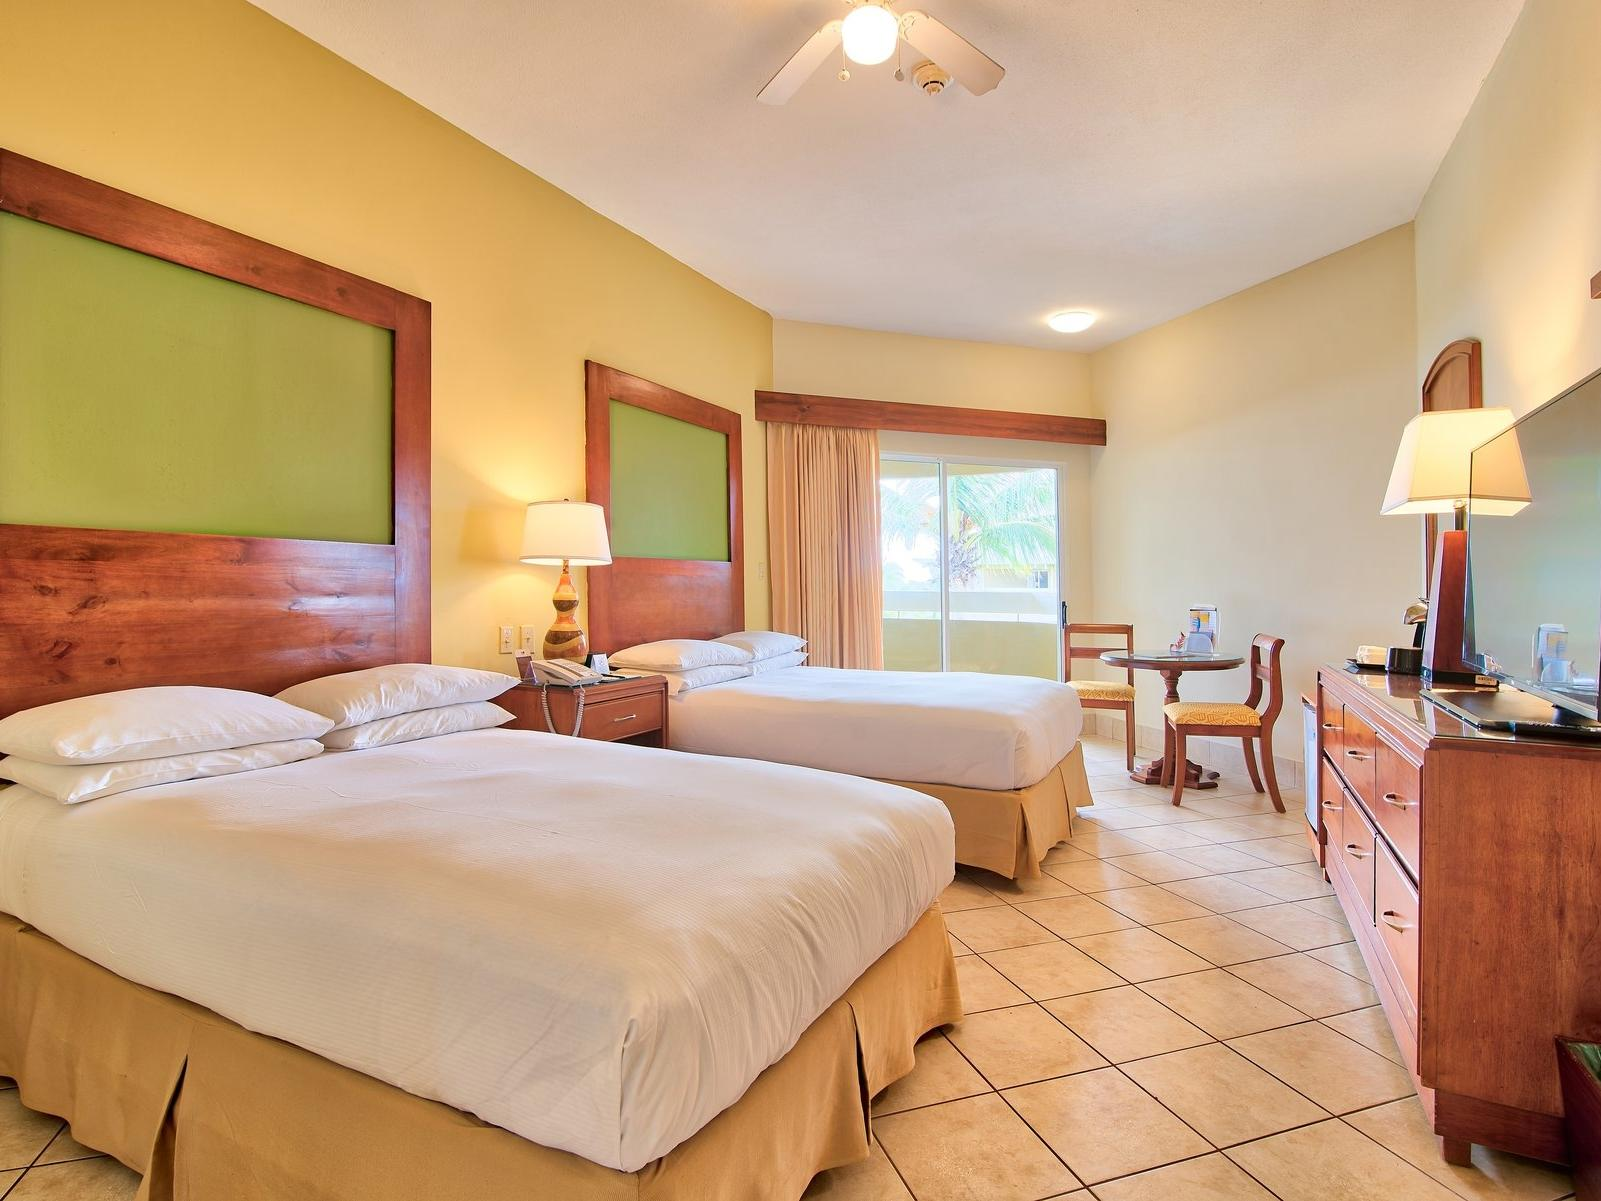 Royal ocean view 2 double bed with tv facility at Fiesta Resort